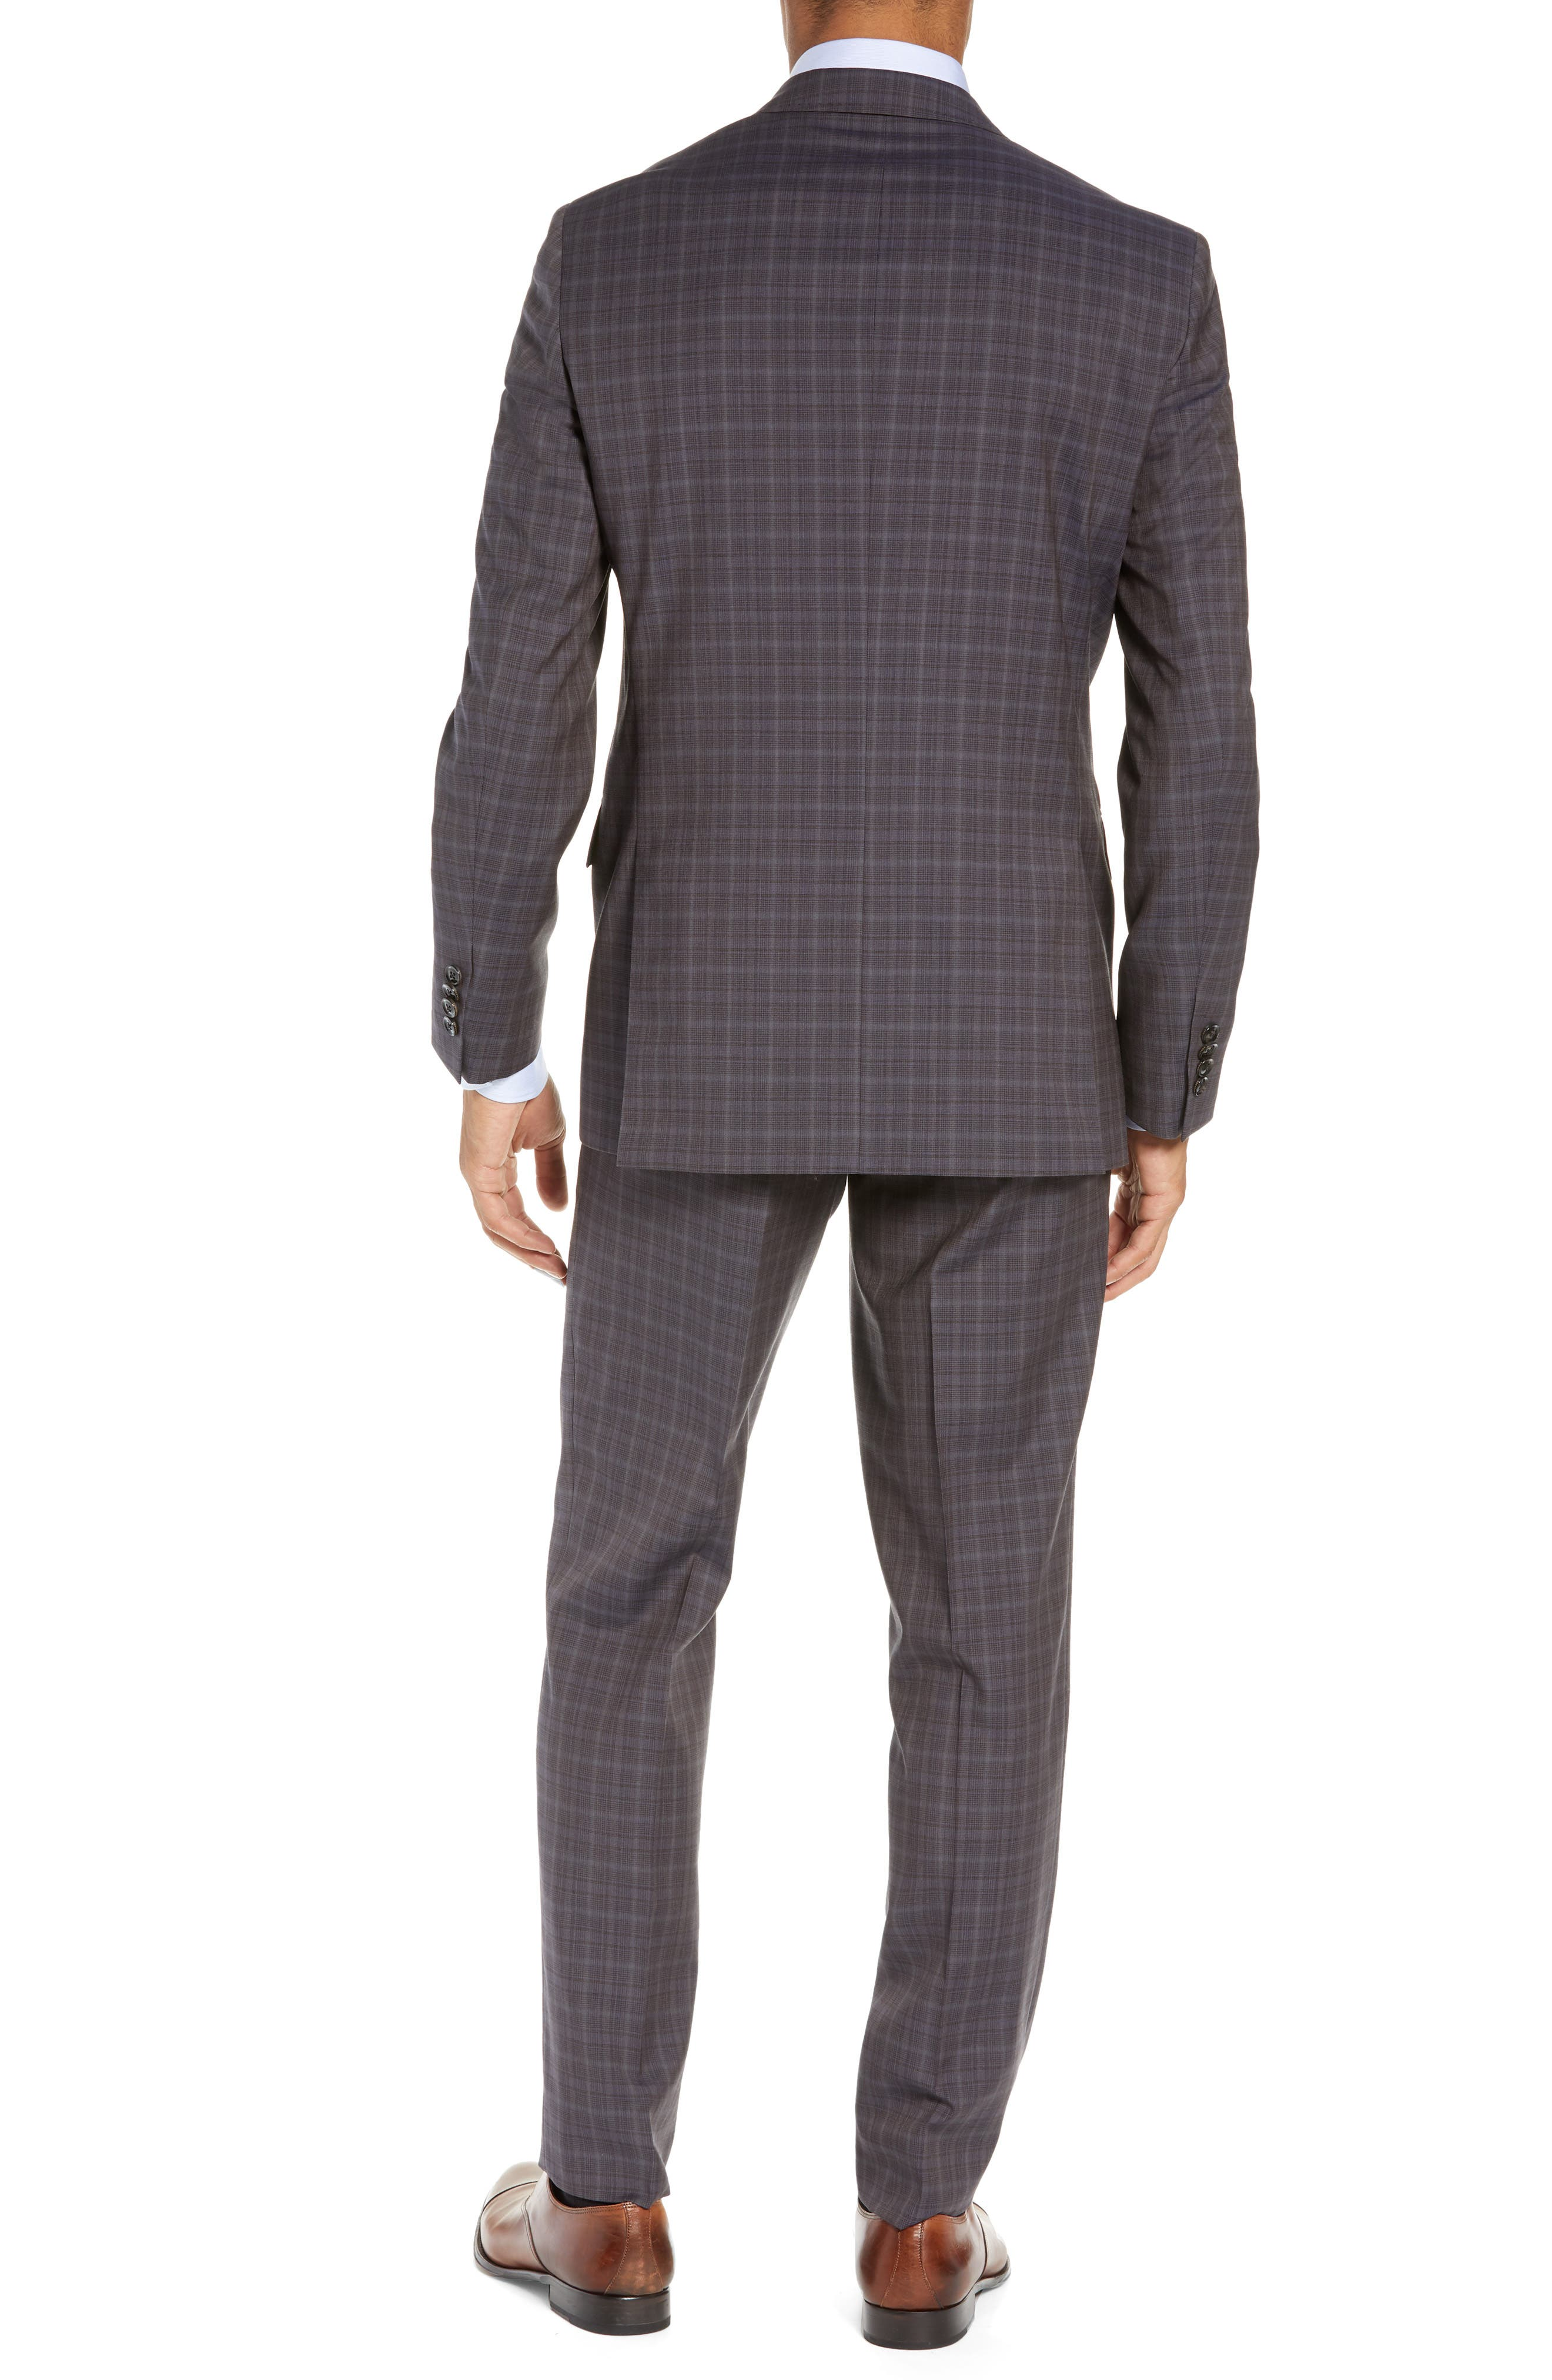 TED BAKER LONDON,                             Jay Trim Fit Plaid Wool Suit,                             Alternate thumbnail 2, color,                             TAUPE